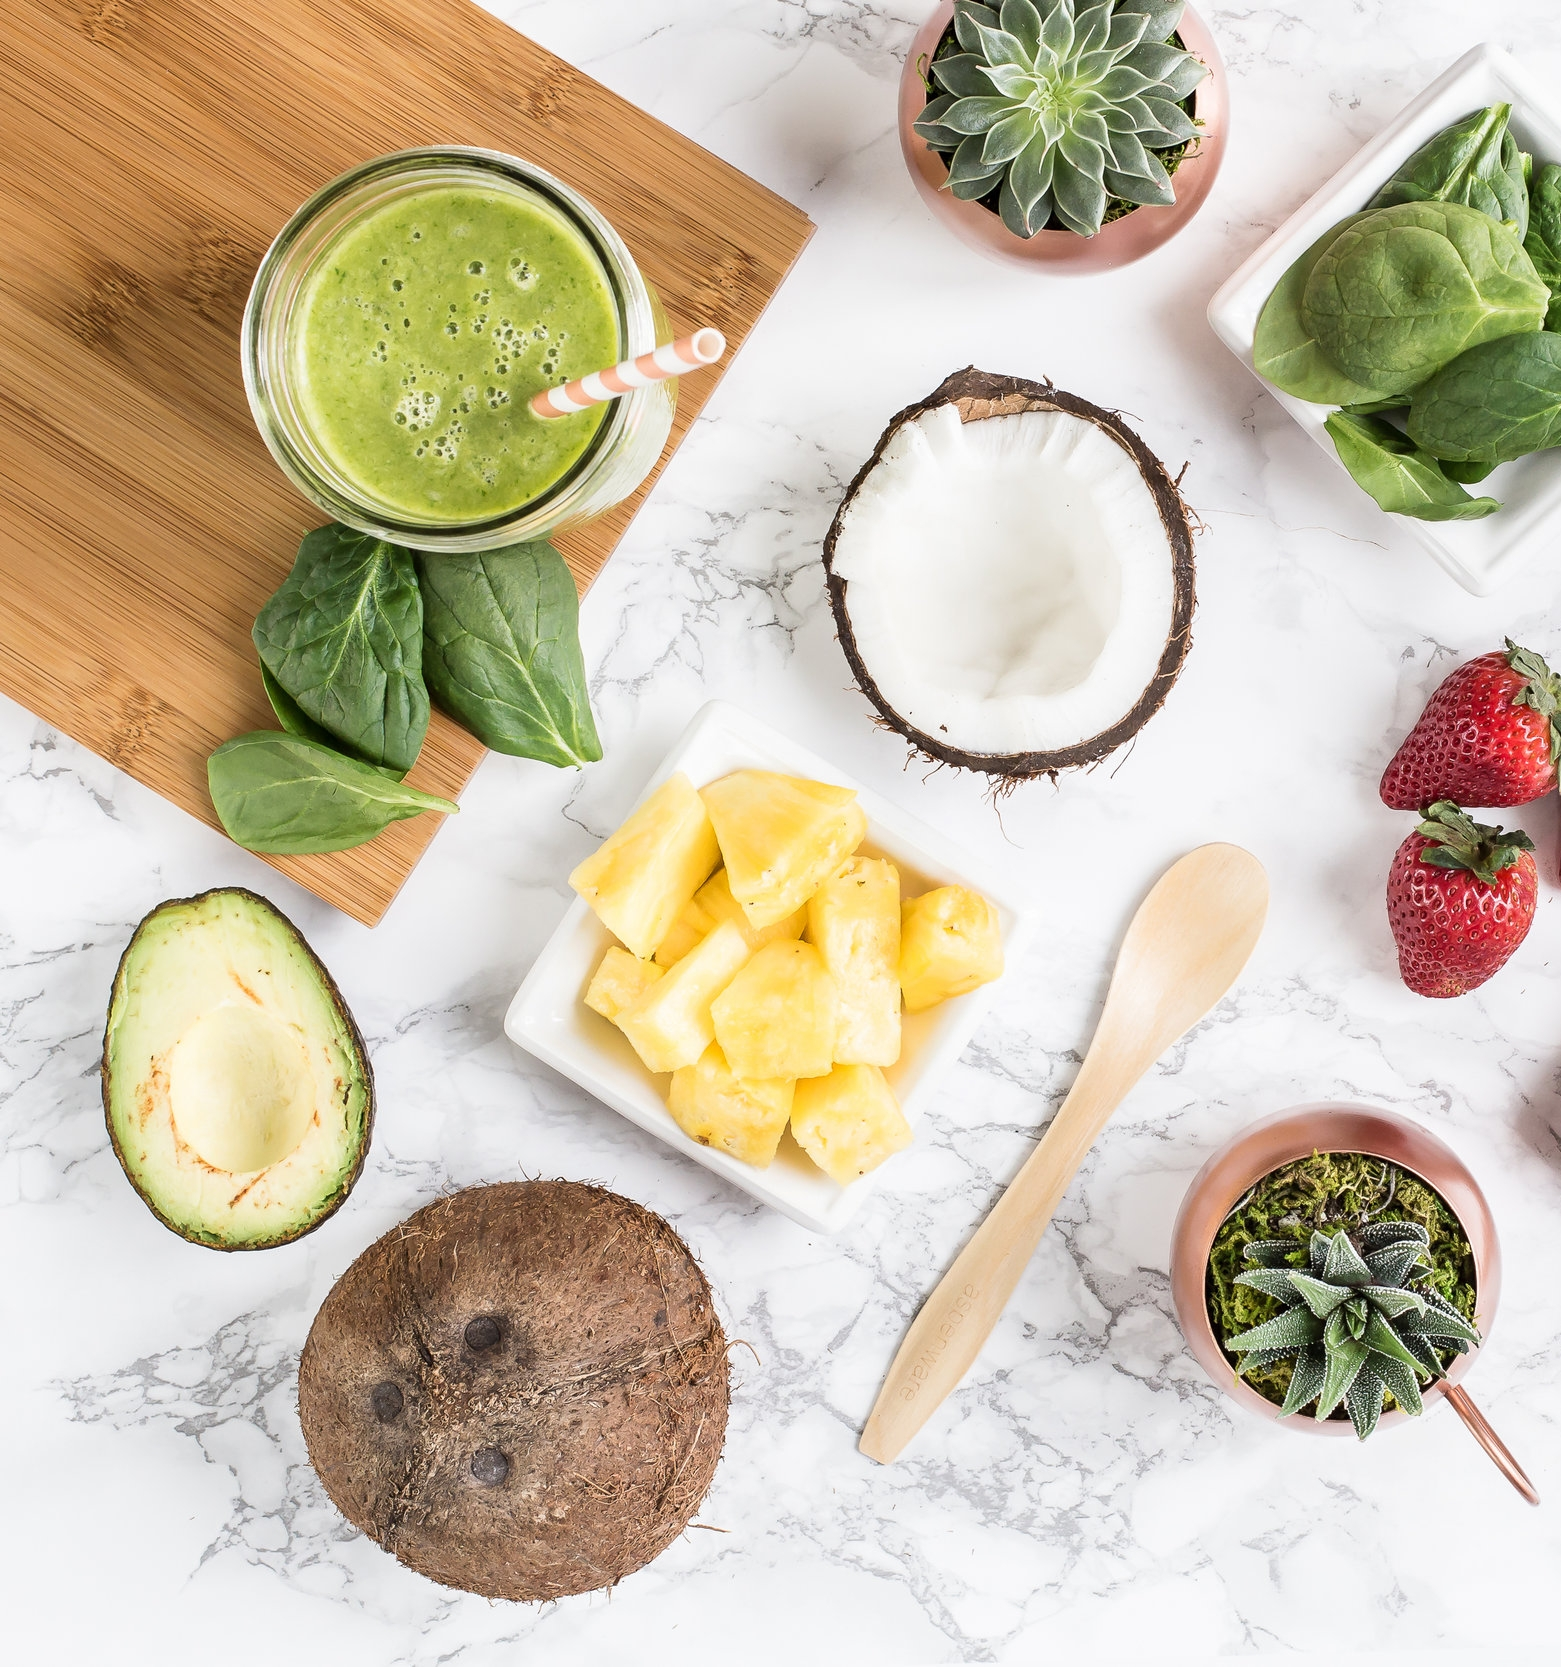 hc-styled-stock-healthy-food-life-green-smoothie-21-final.jpg